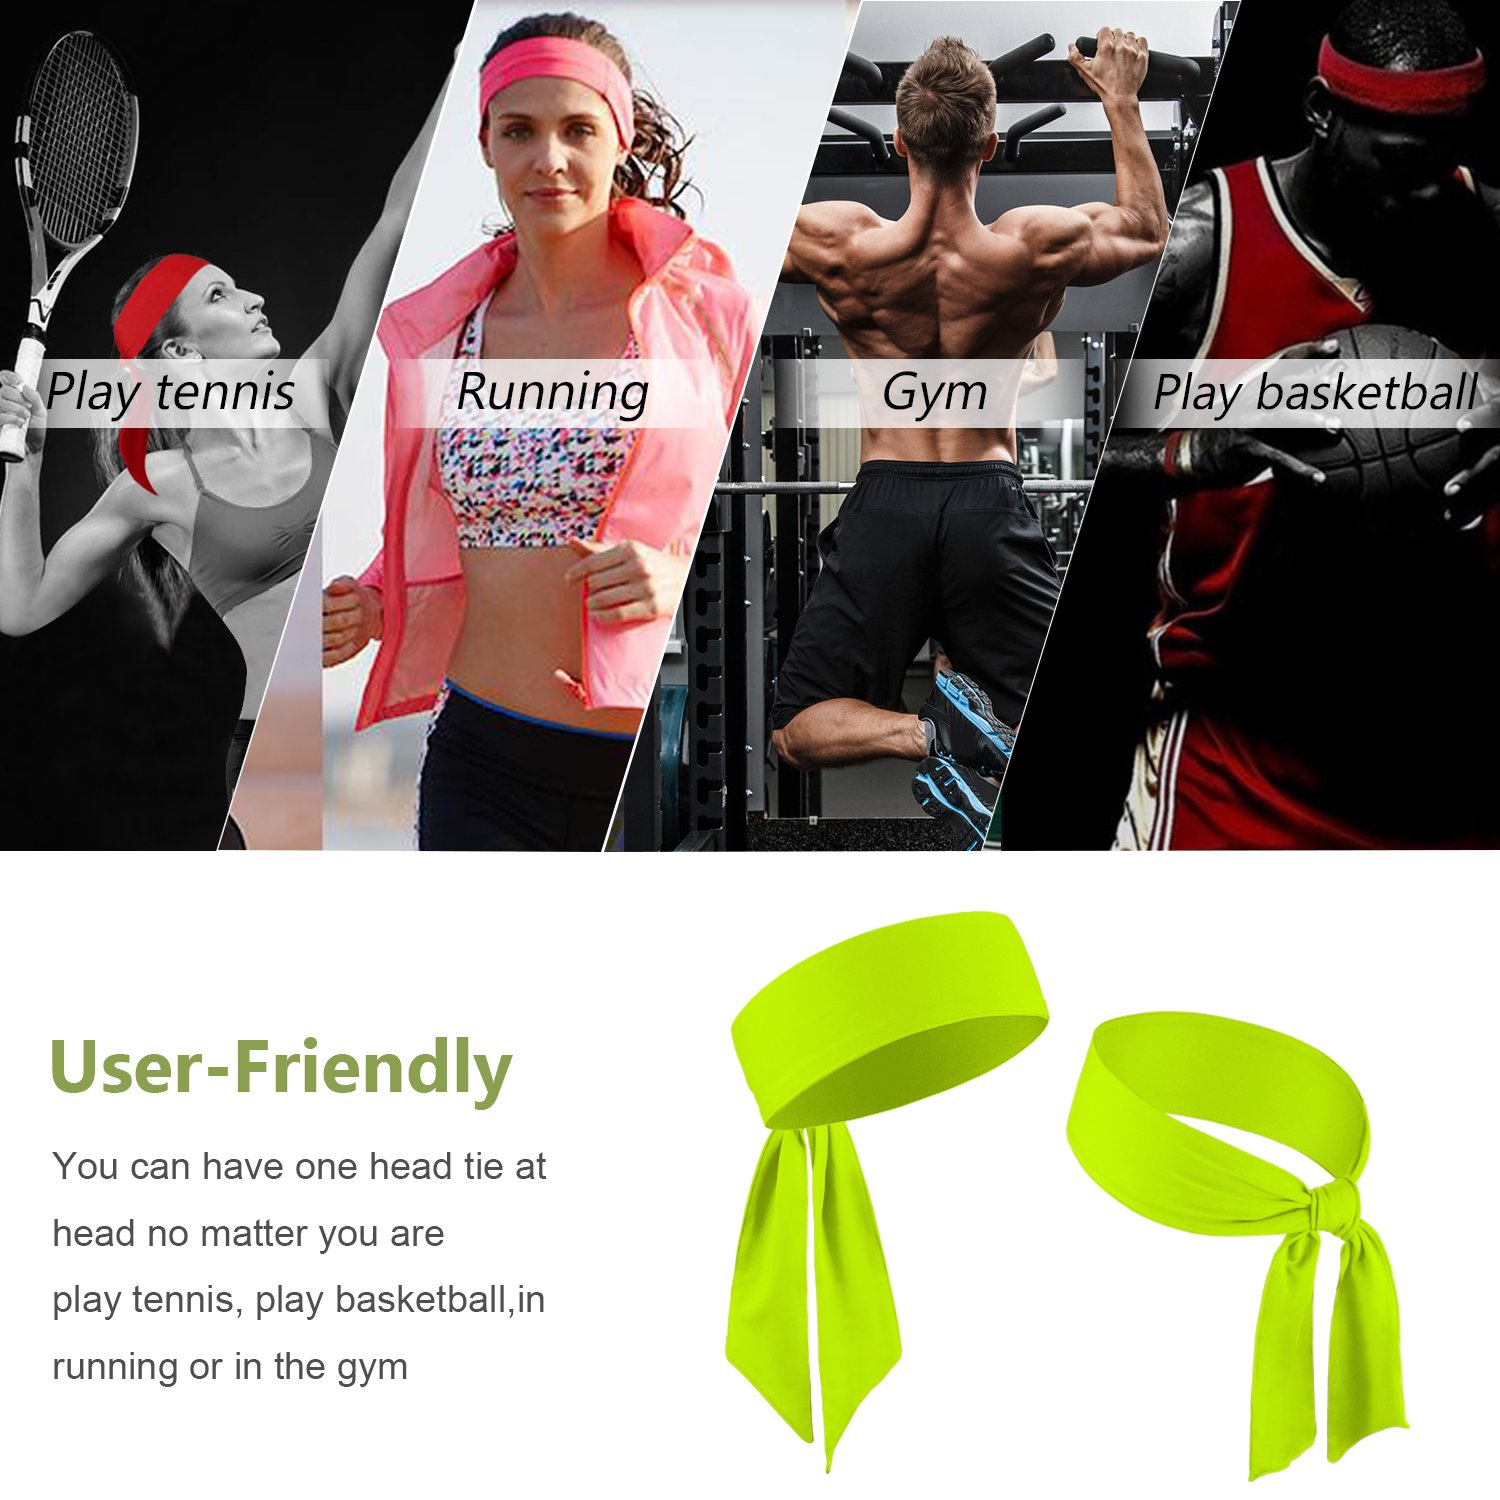 Amazon.com : BEACE Head Tie Headband for Men & Women - 1PCS / 2PCS / 3PCS - Keep Sweat Out of Your Face - Moisture Wicking & Performance Stretch - Sports ...